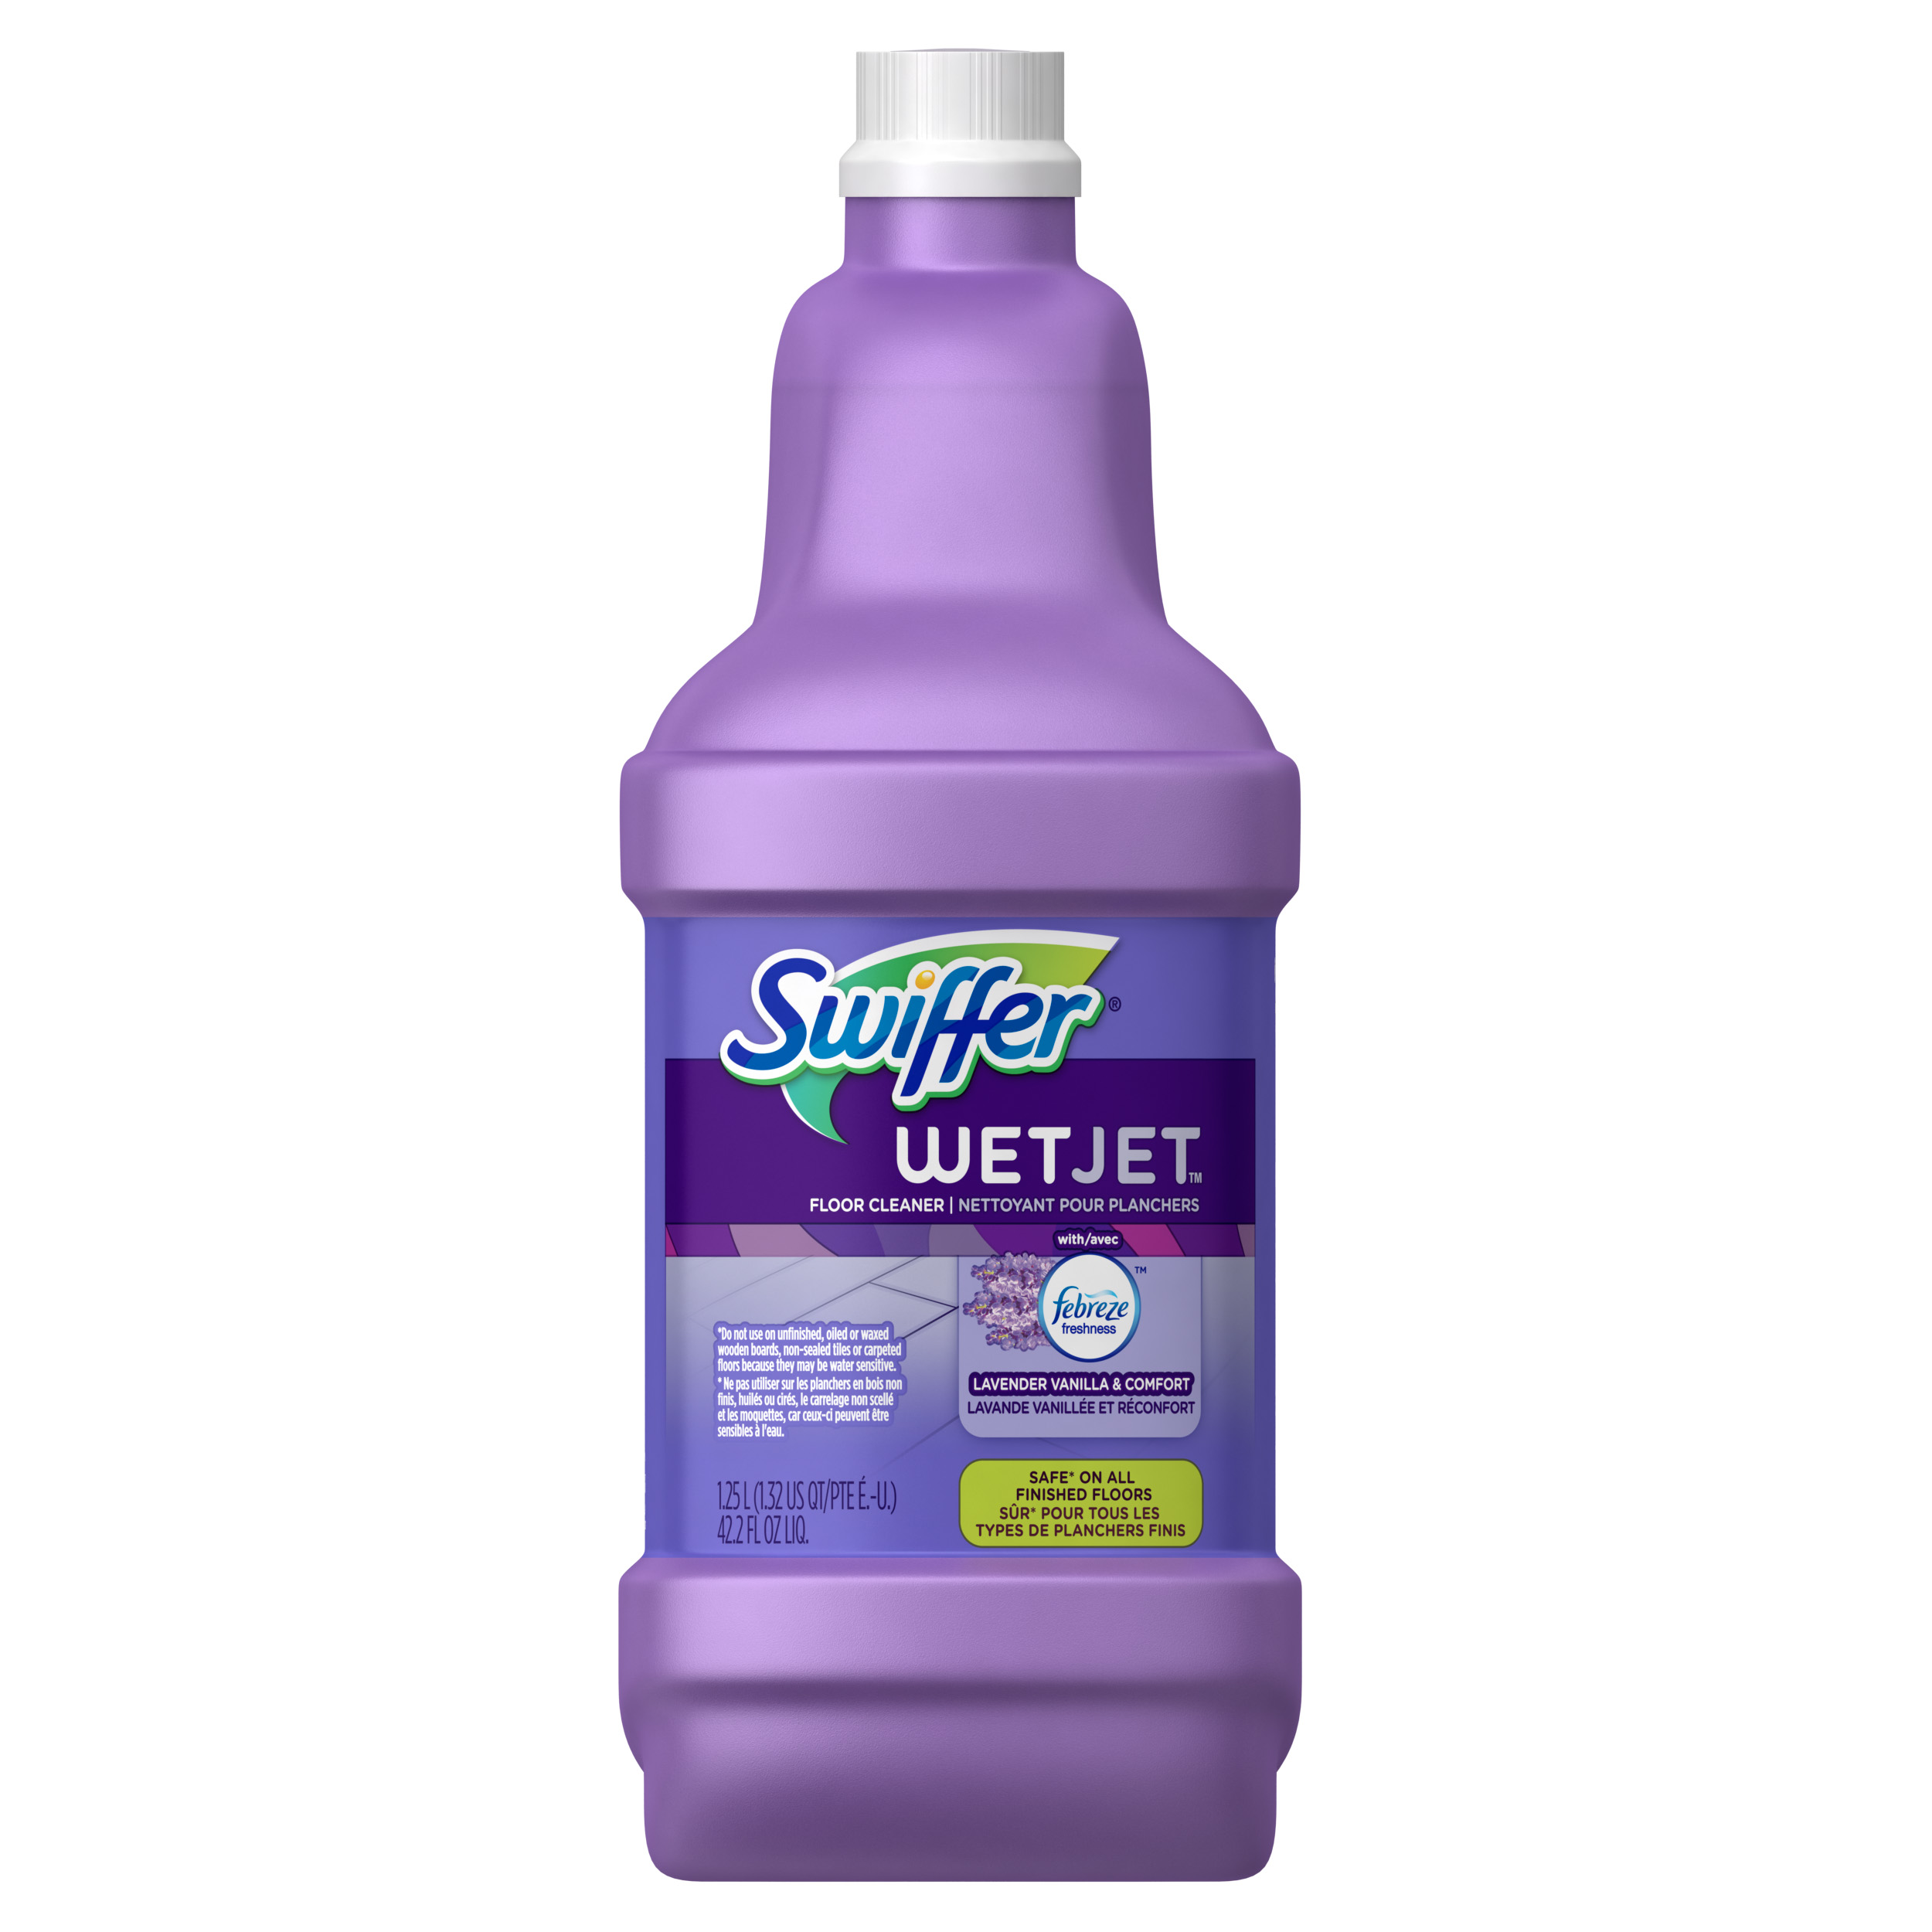 Swiffer WetJet Multi-purpose Floor Cleaner Solution Refill with Febreze Lavender Vanilla & Comfort Scent 1.25L